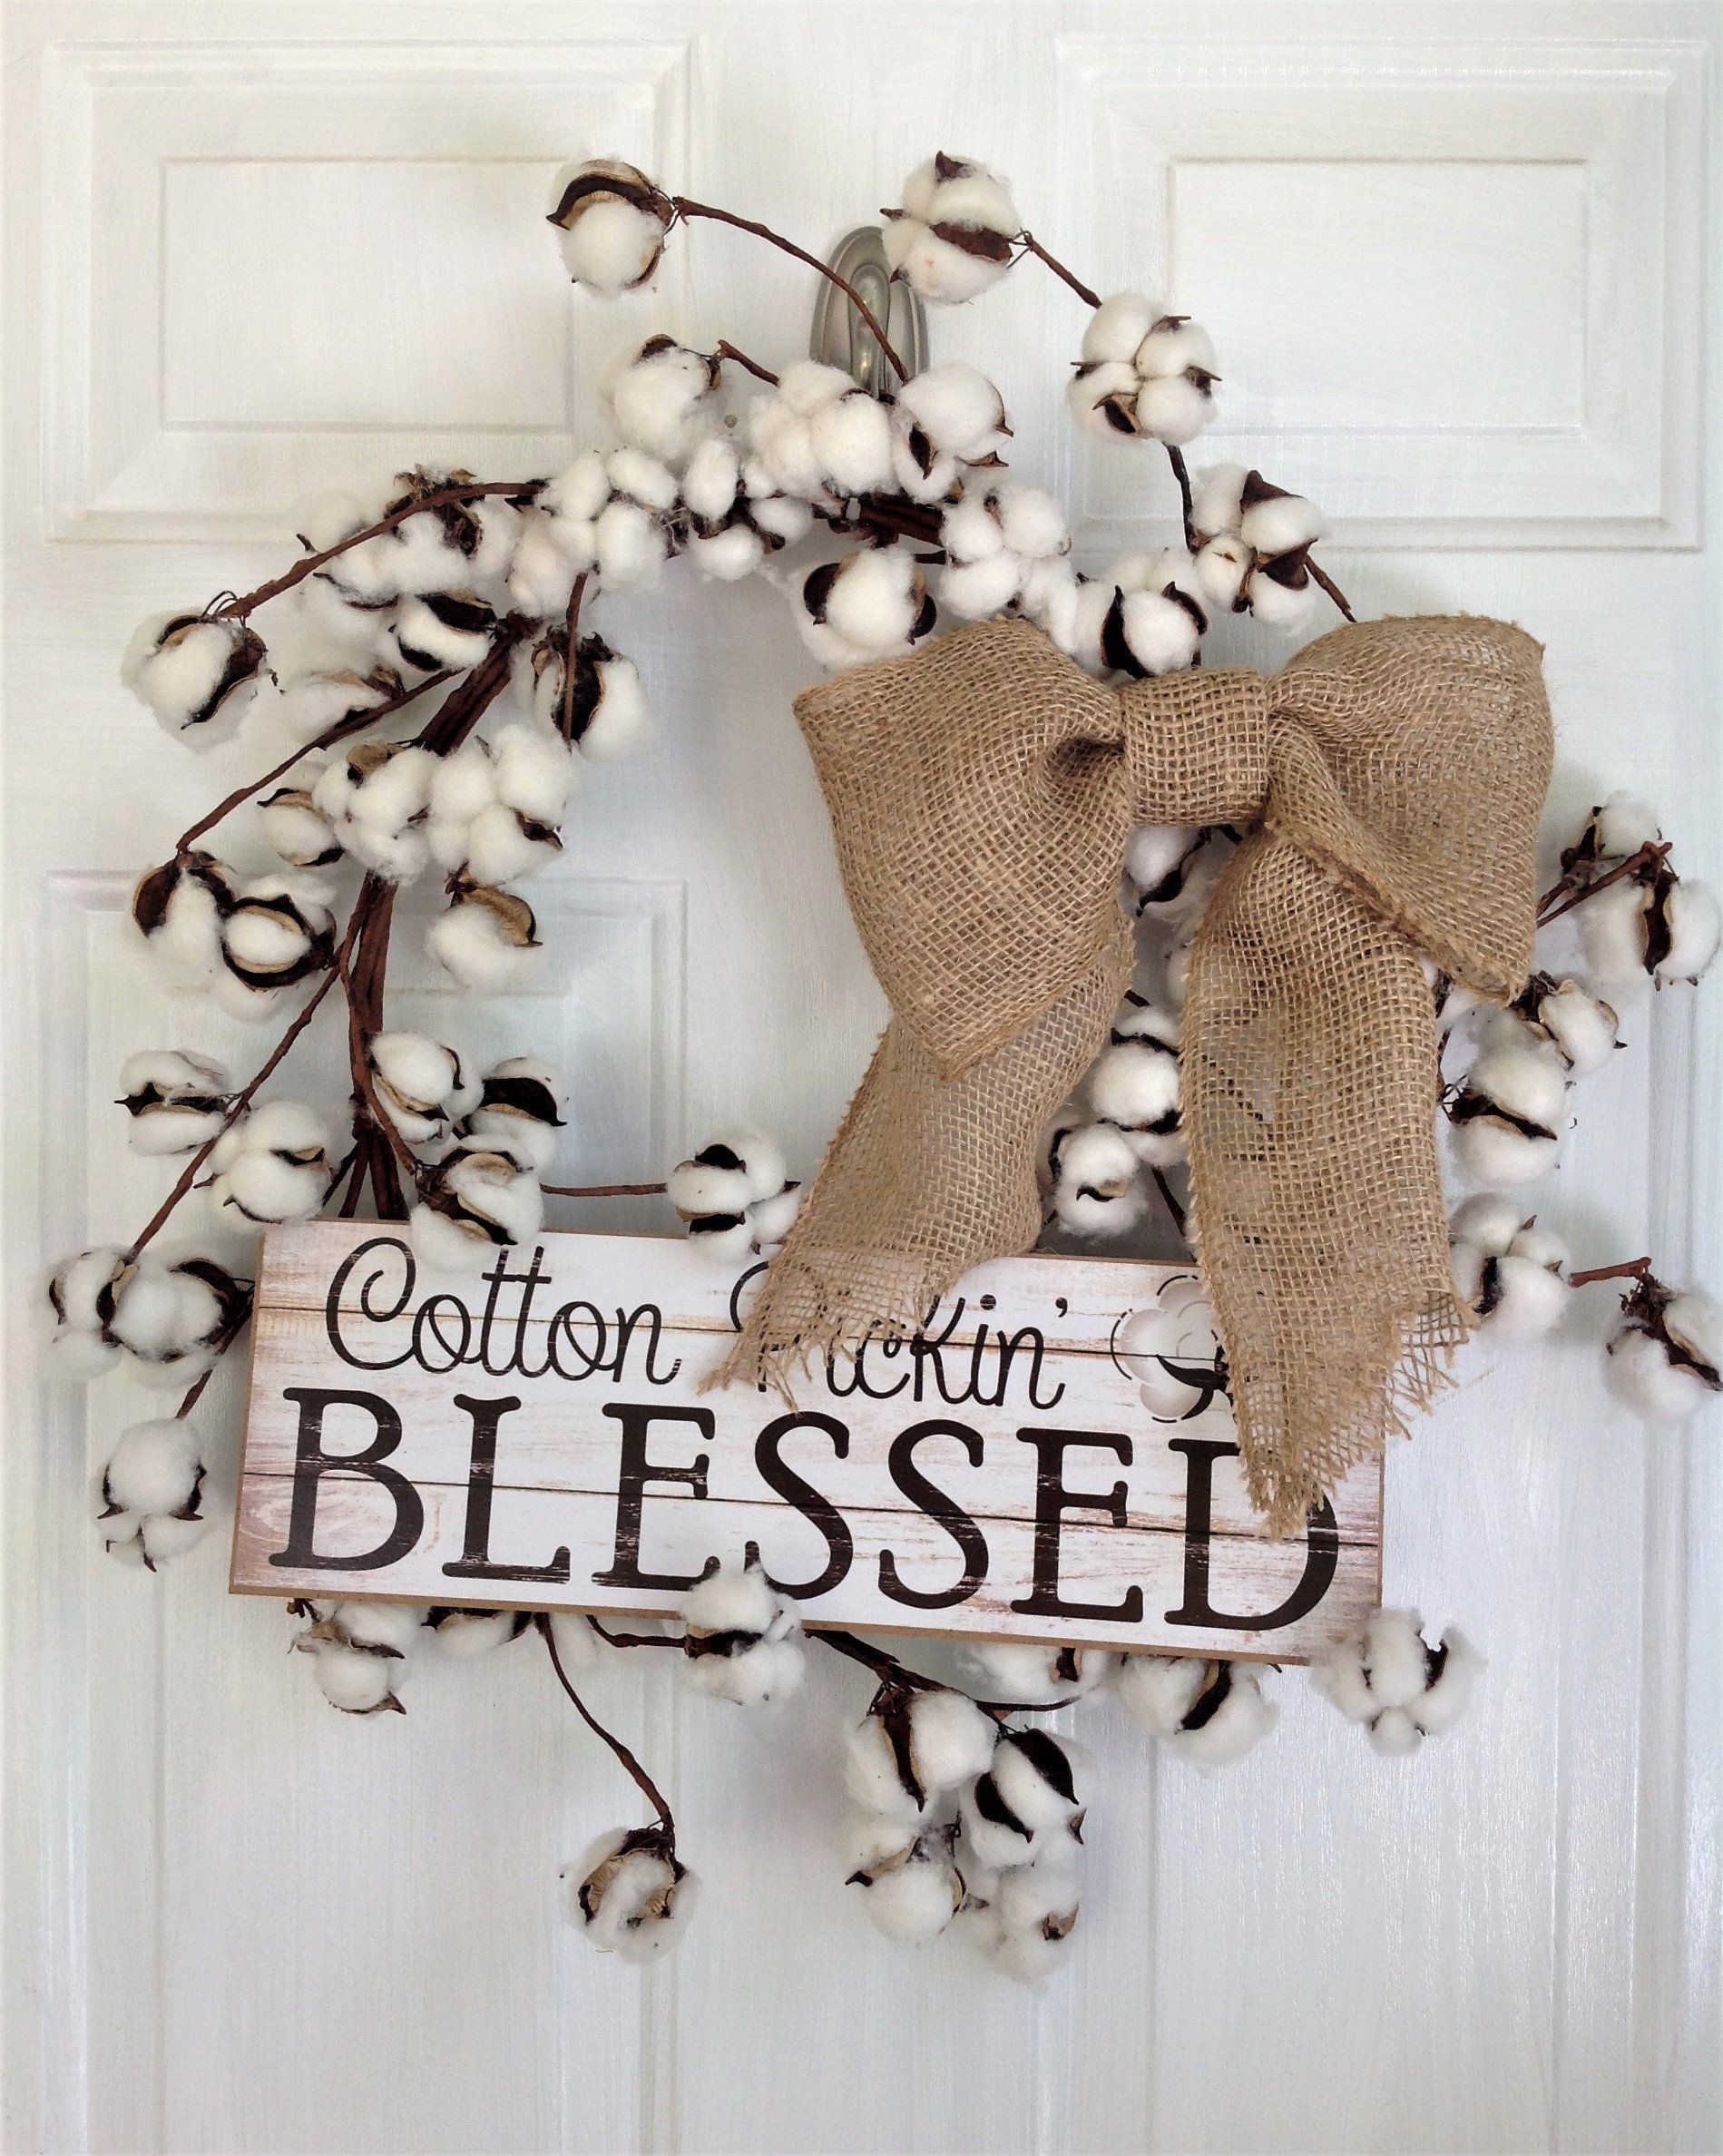 Cotton Wreath Farmhouse Wreath Country Wreath Fall Wreath Burlap Wreath Everyday Wreath Rustic Wreath Farmhouse Decor Country Decor With Images Cotton Wreath Burlap Wreath